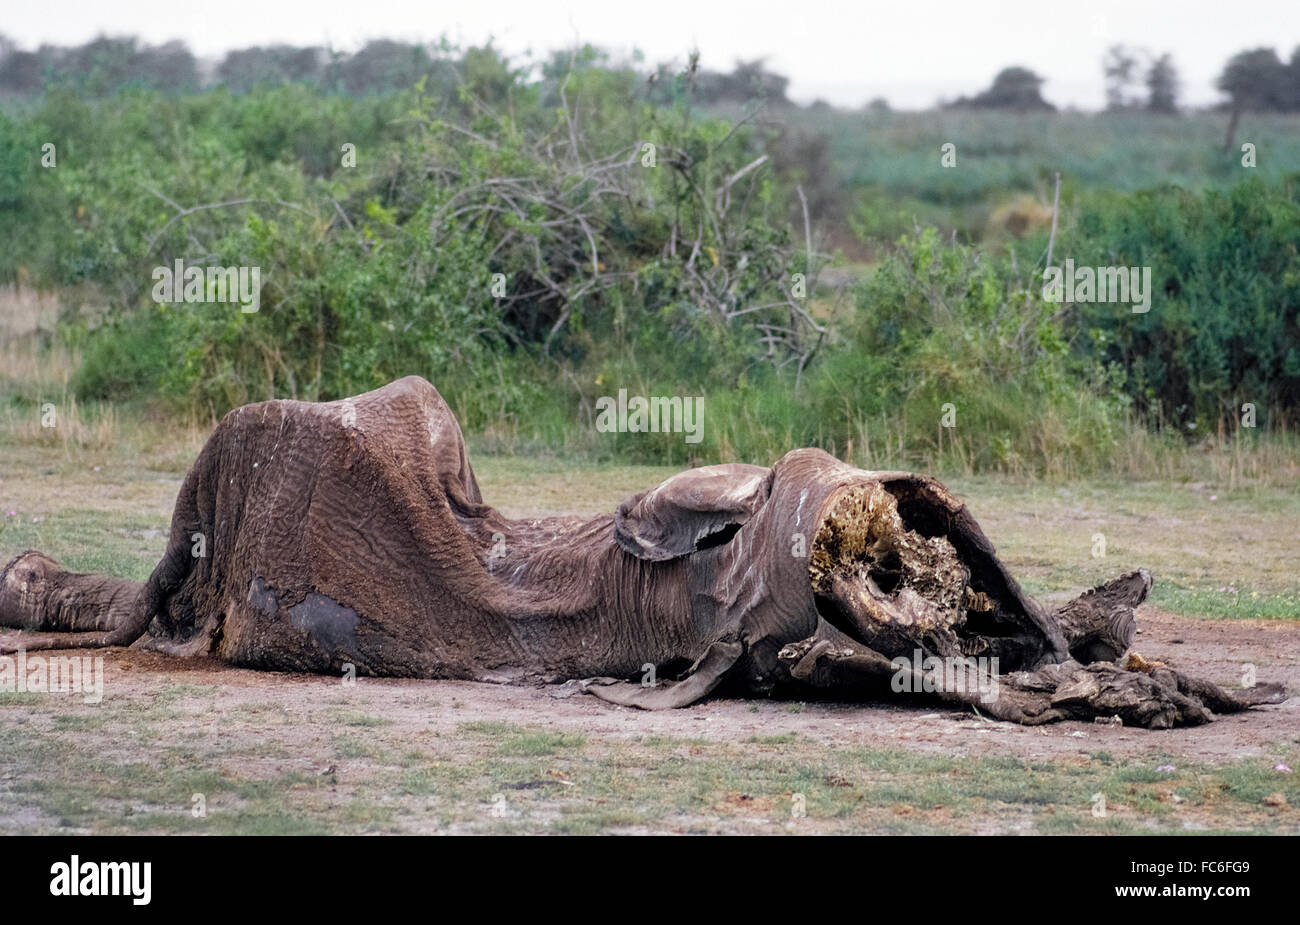 The dried-up carcass of an African elephant (Loxodonta africana) that was eaten by wild animals is all that remains - Stock Image